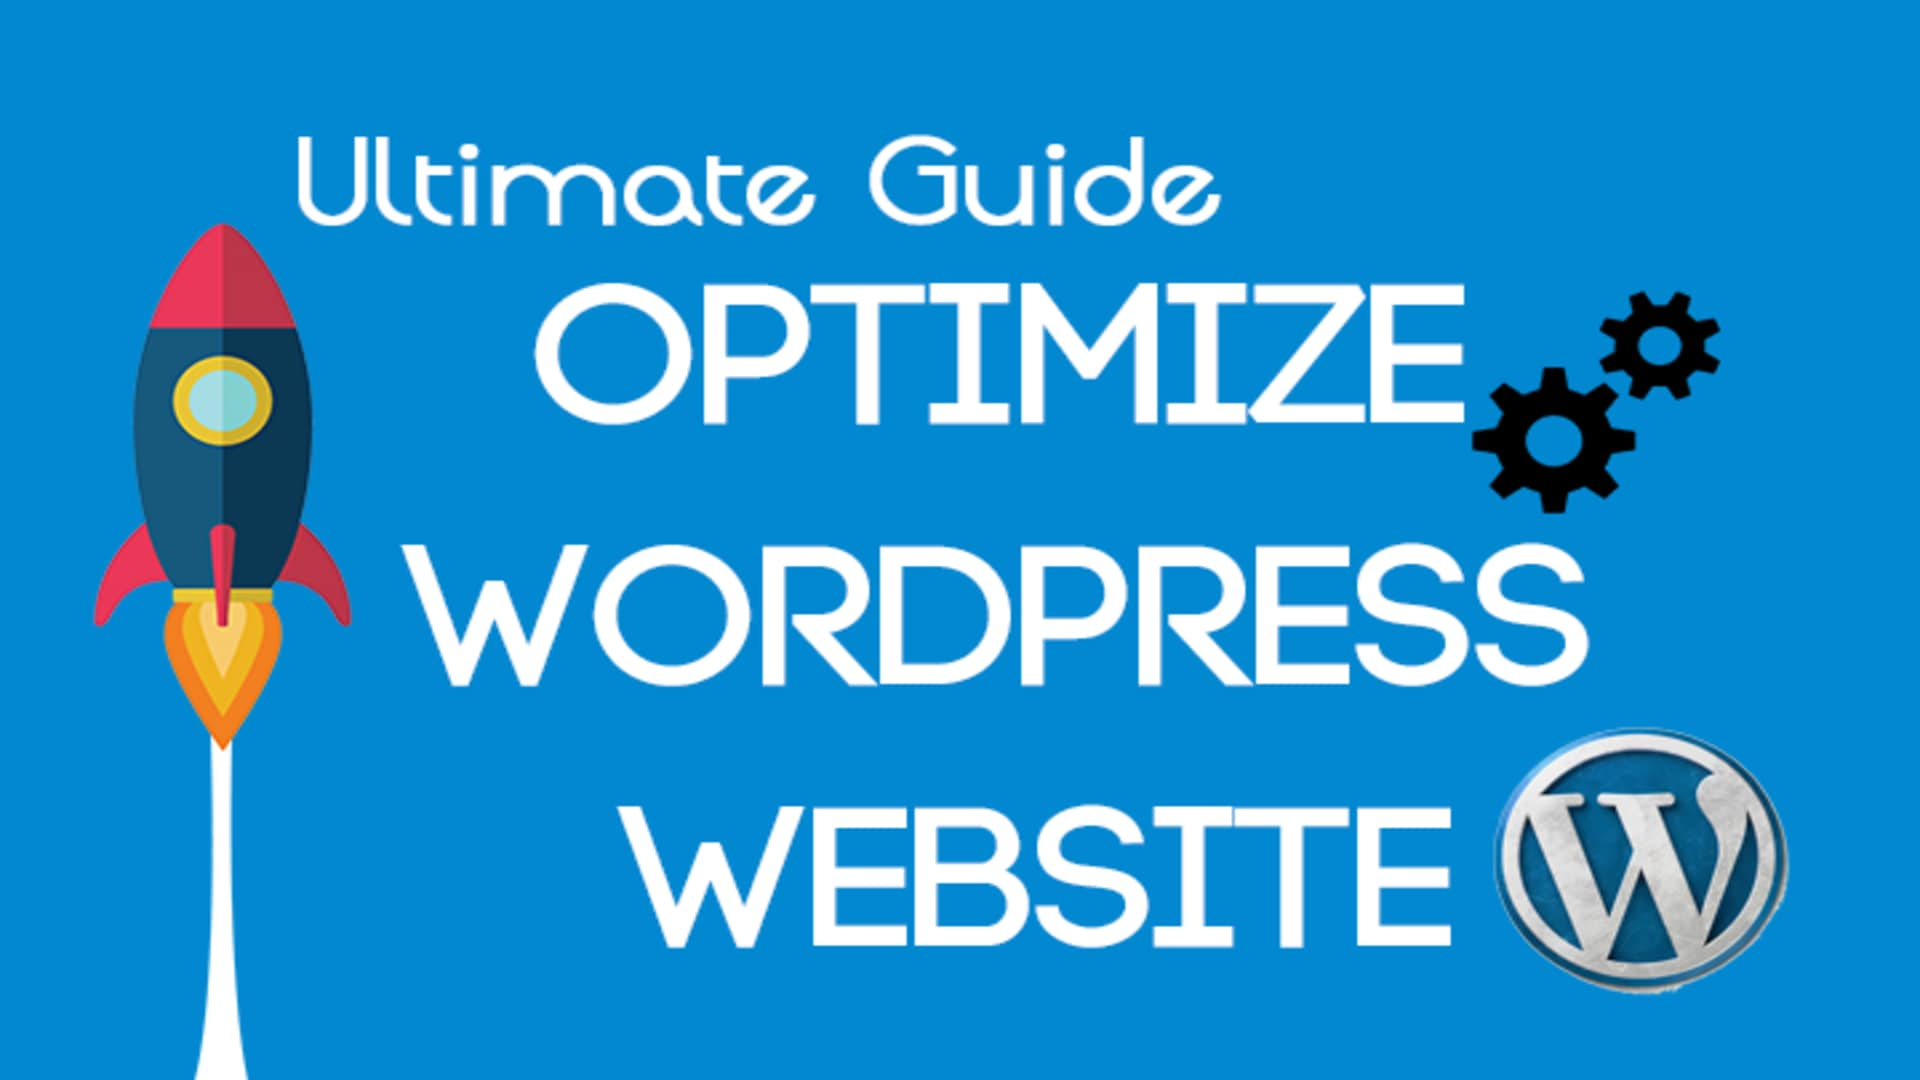 Ways to Optimize Your WordPress Blog for More Traffic